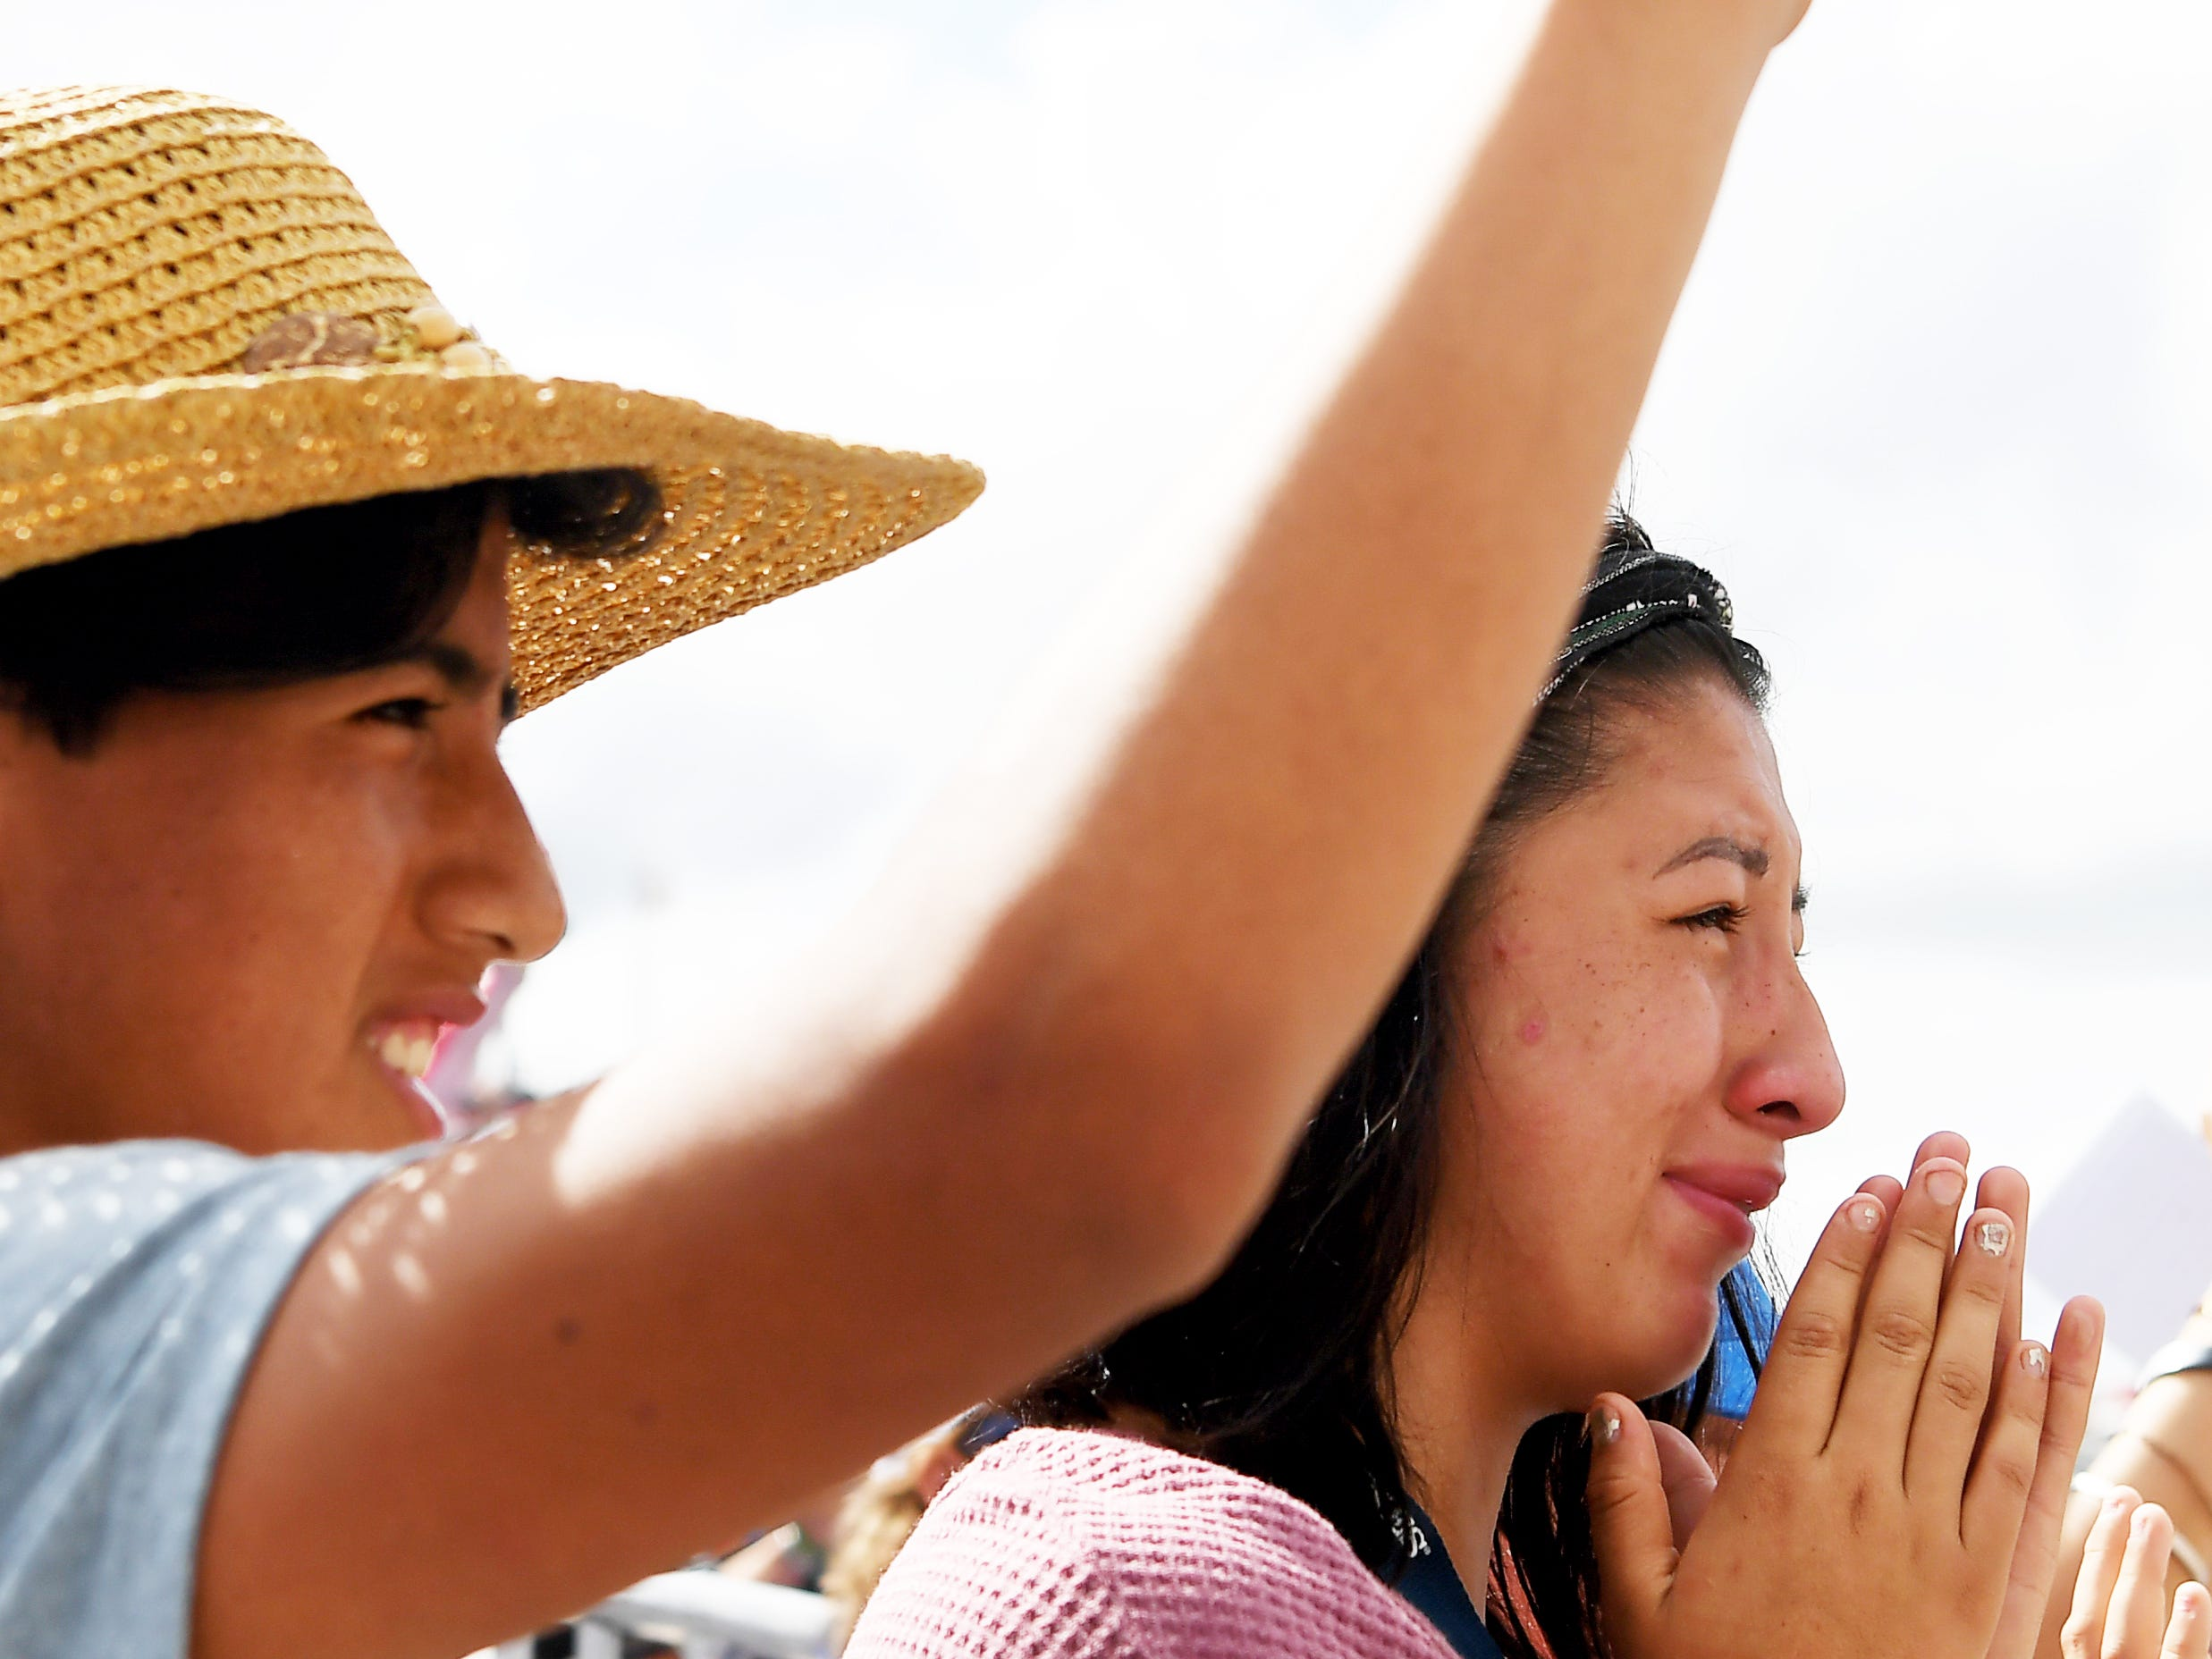 Mateo Mendoza, 15, waves to his father as his sister, Francis, 17, cries following Julio Mendoza's dressage competition at the World Equestrian Games in Tryon Sept. 13, 2018.